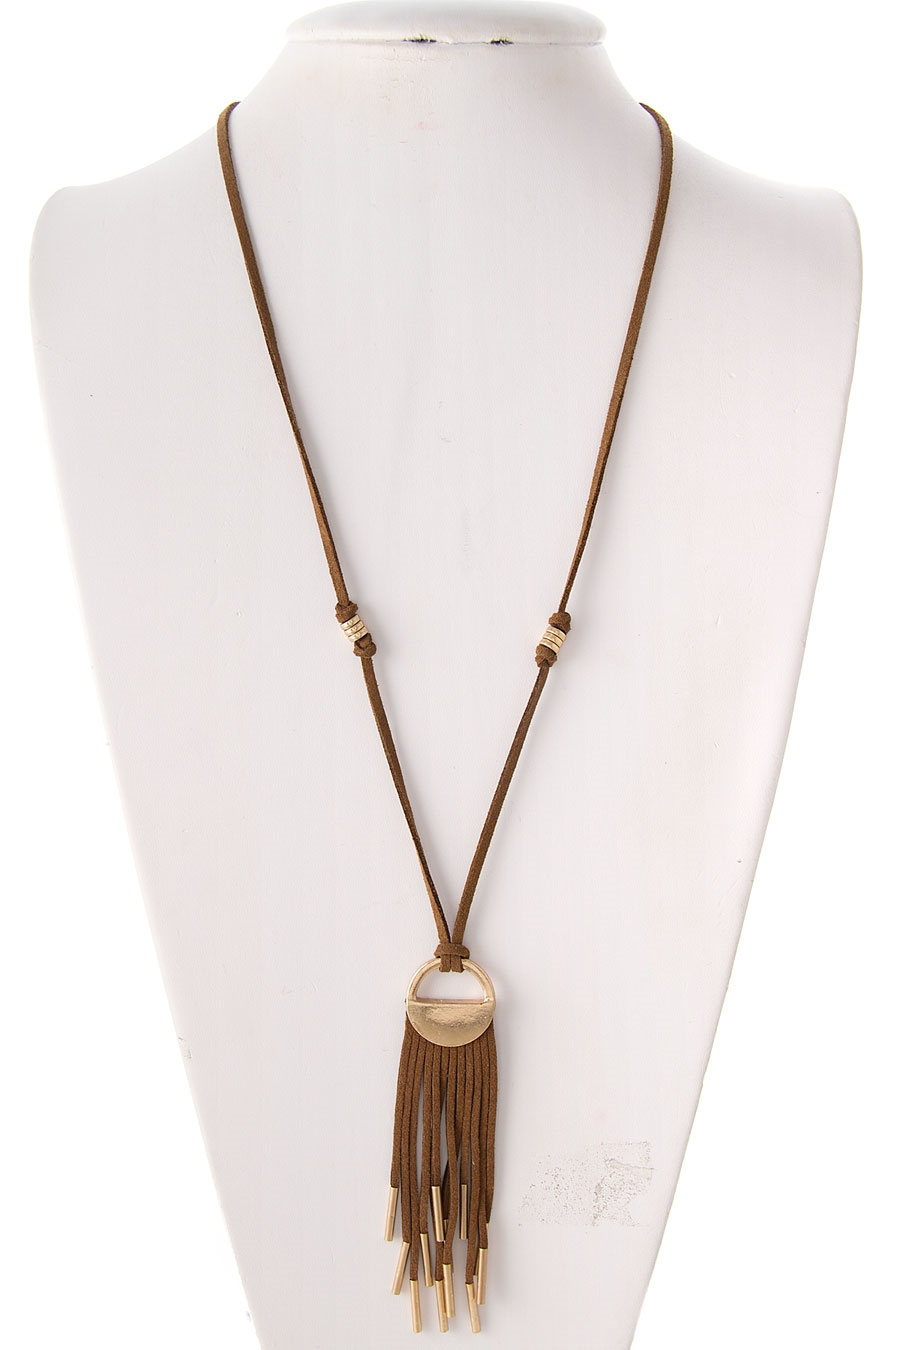 SUEDE TASSEL NECKLACE - orangeshine.com